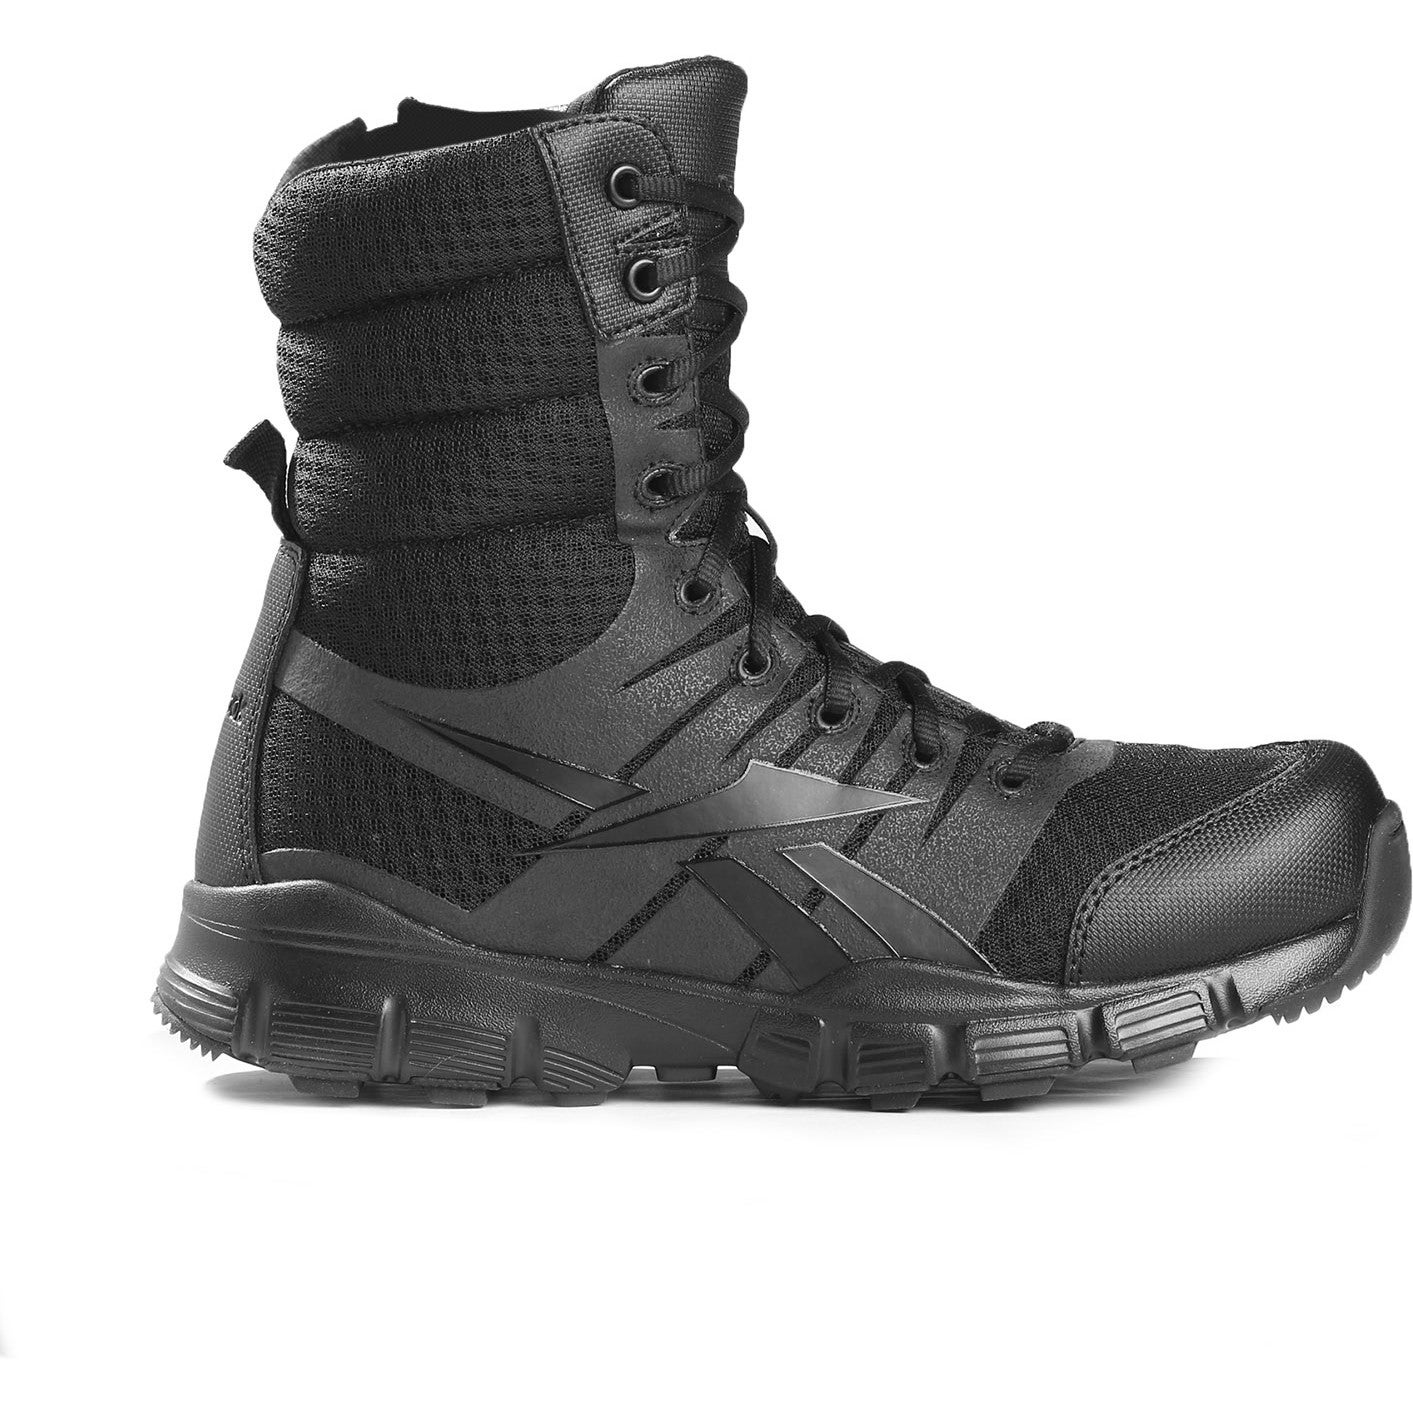 9f0c594604bb01 Reebok Military Dauntless 8in Seamless Side Zip Mens Military Boots Black  All Sizes